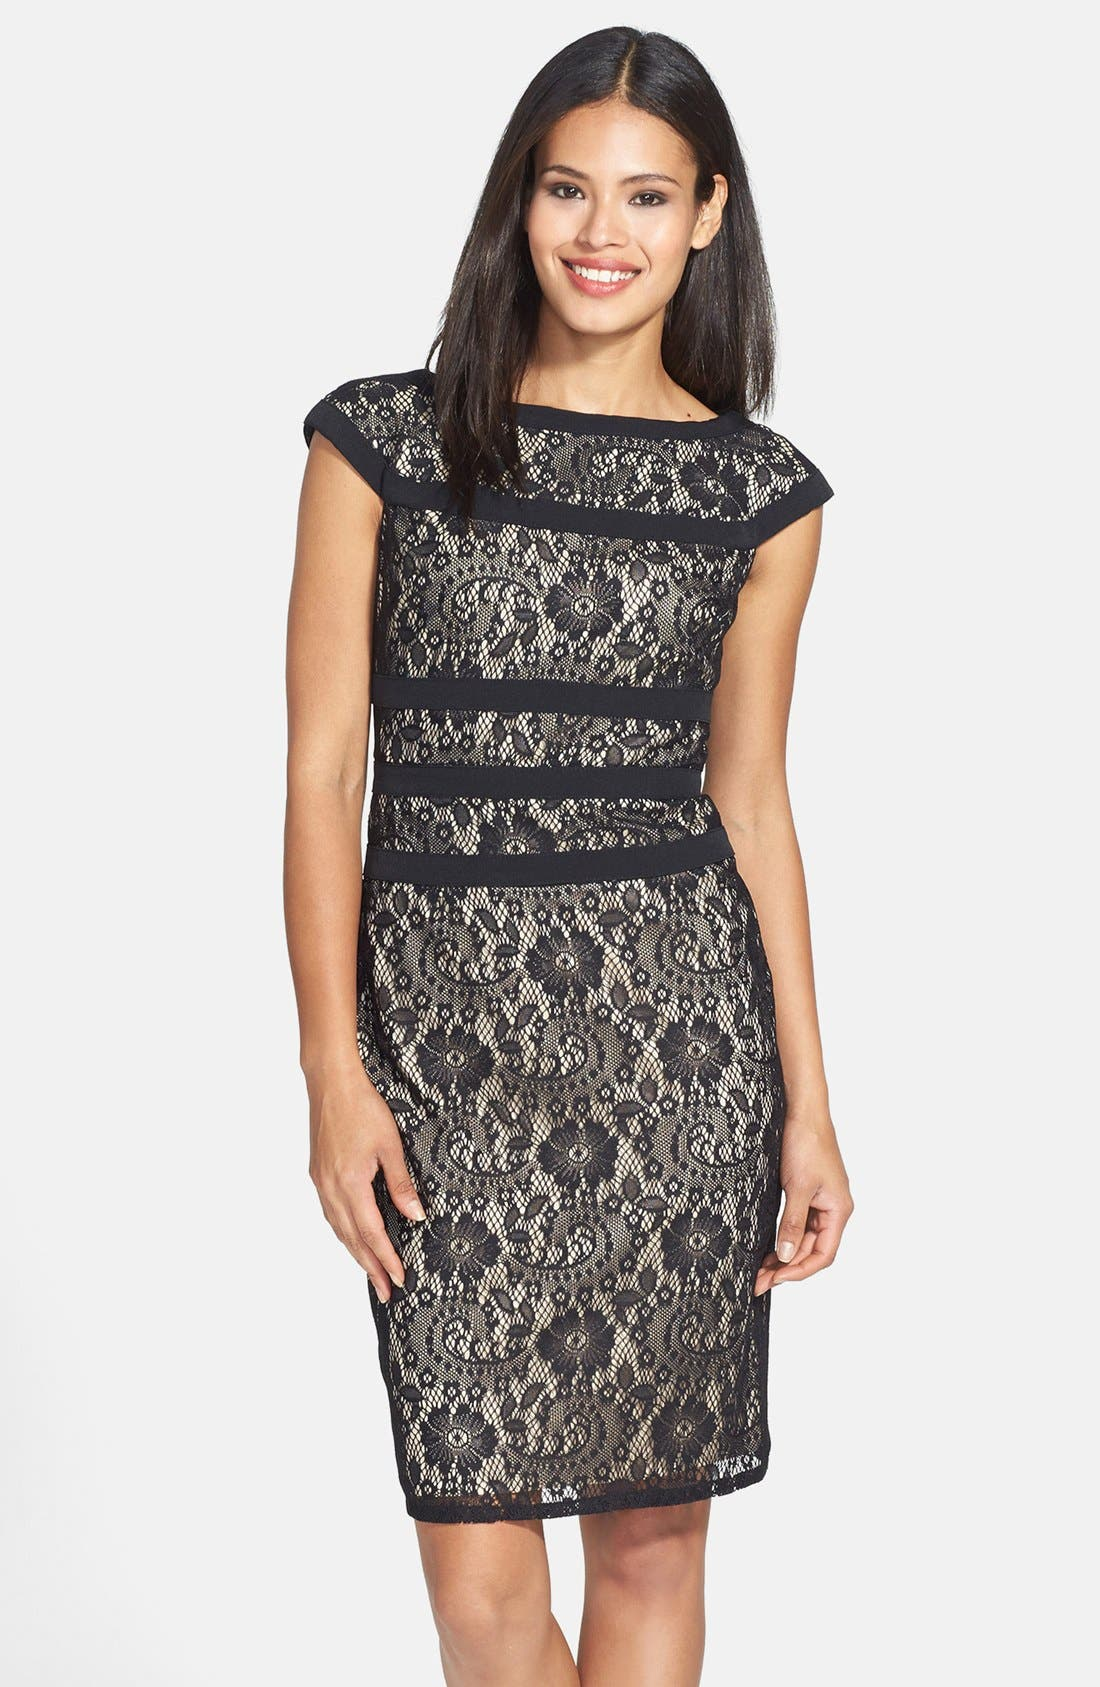 ADRIANNA PAPELL, Lace Sheath Dress, Main thumbnail 1, color, 001